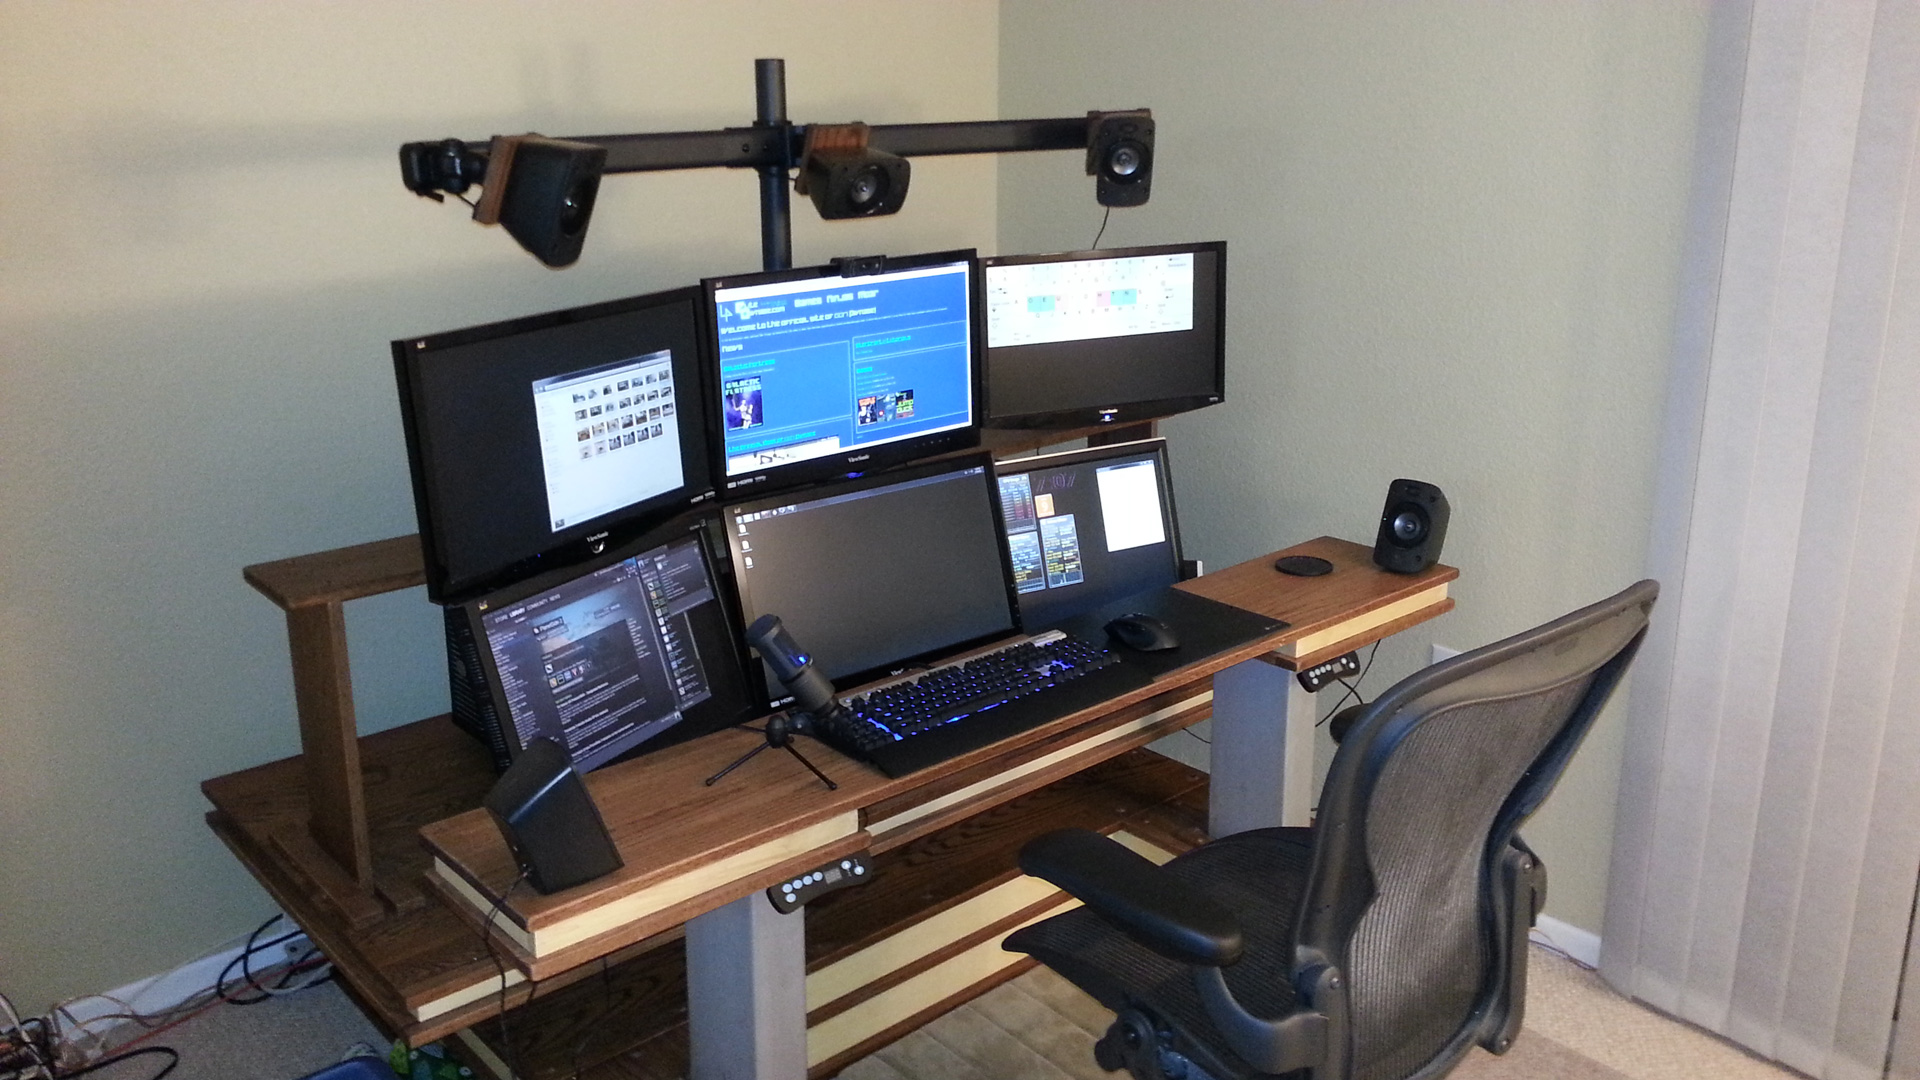 The Official Desk of 1337 Pwnage | The Official Site of ...